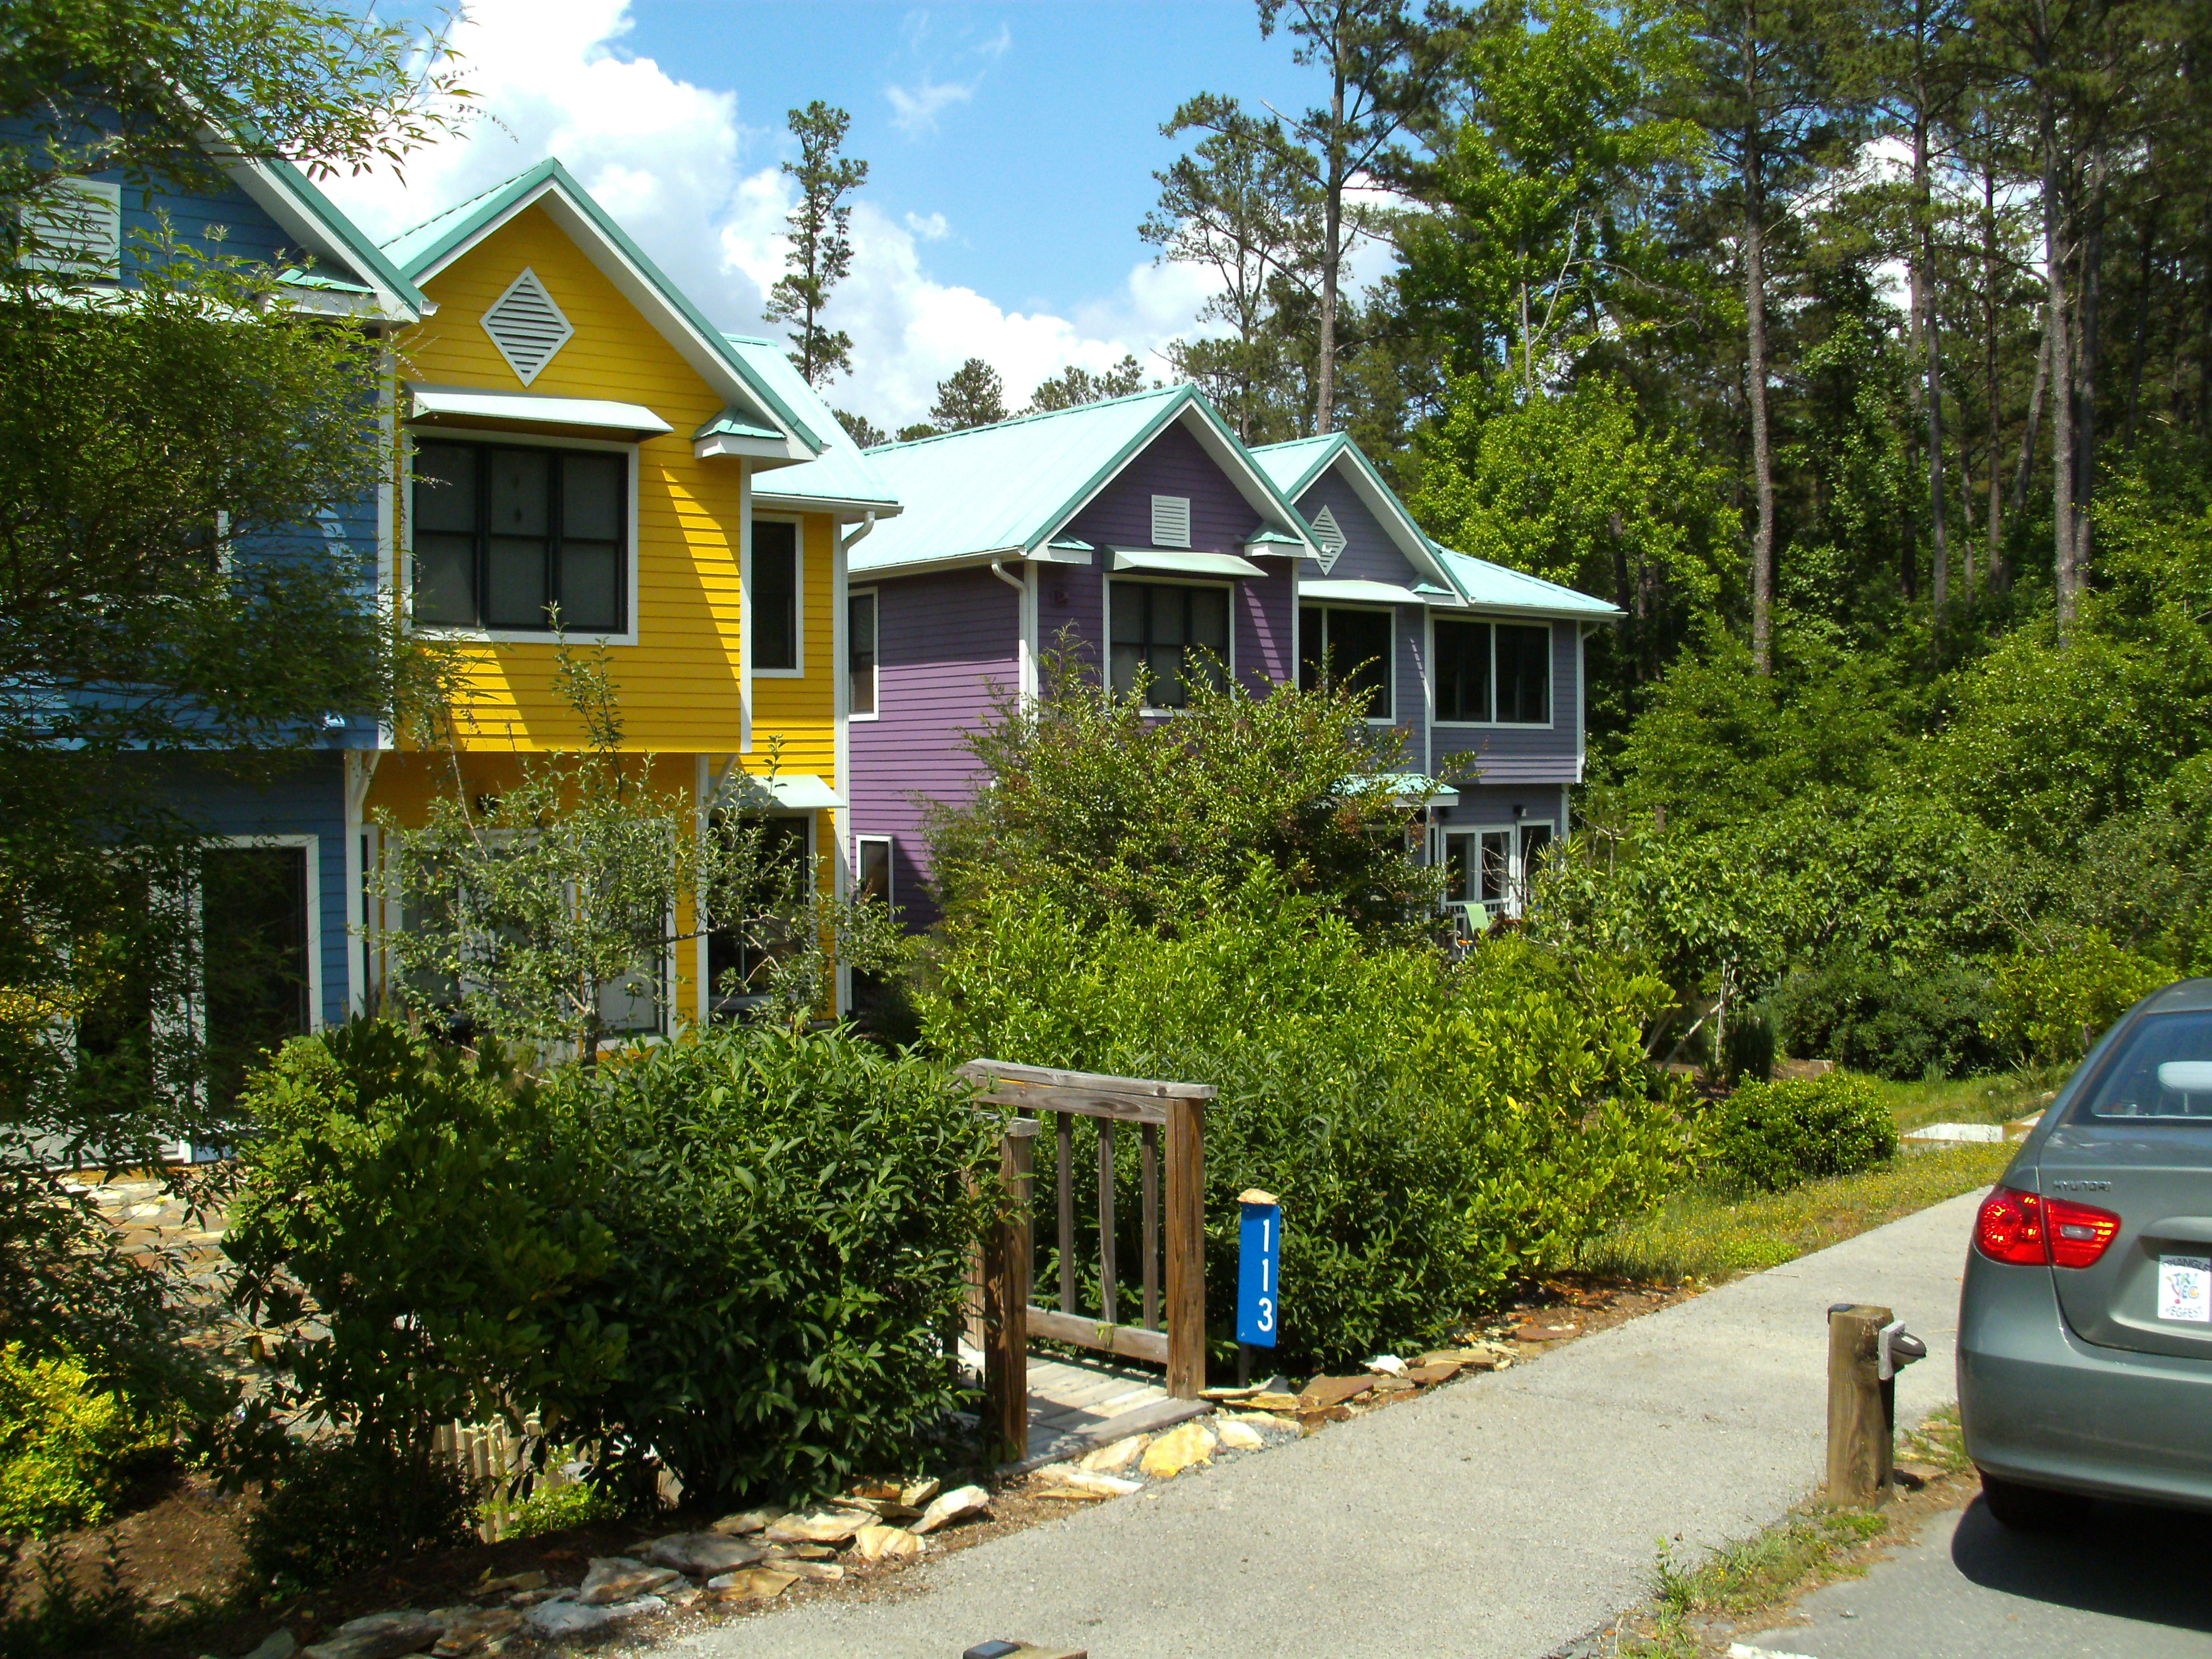 The pacifica community and affordable cohousing giselle for Pacifica house